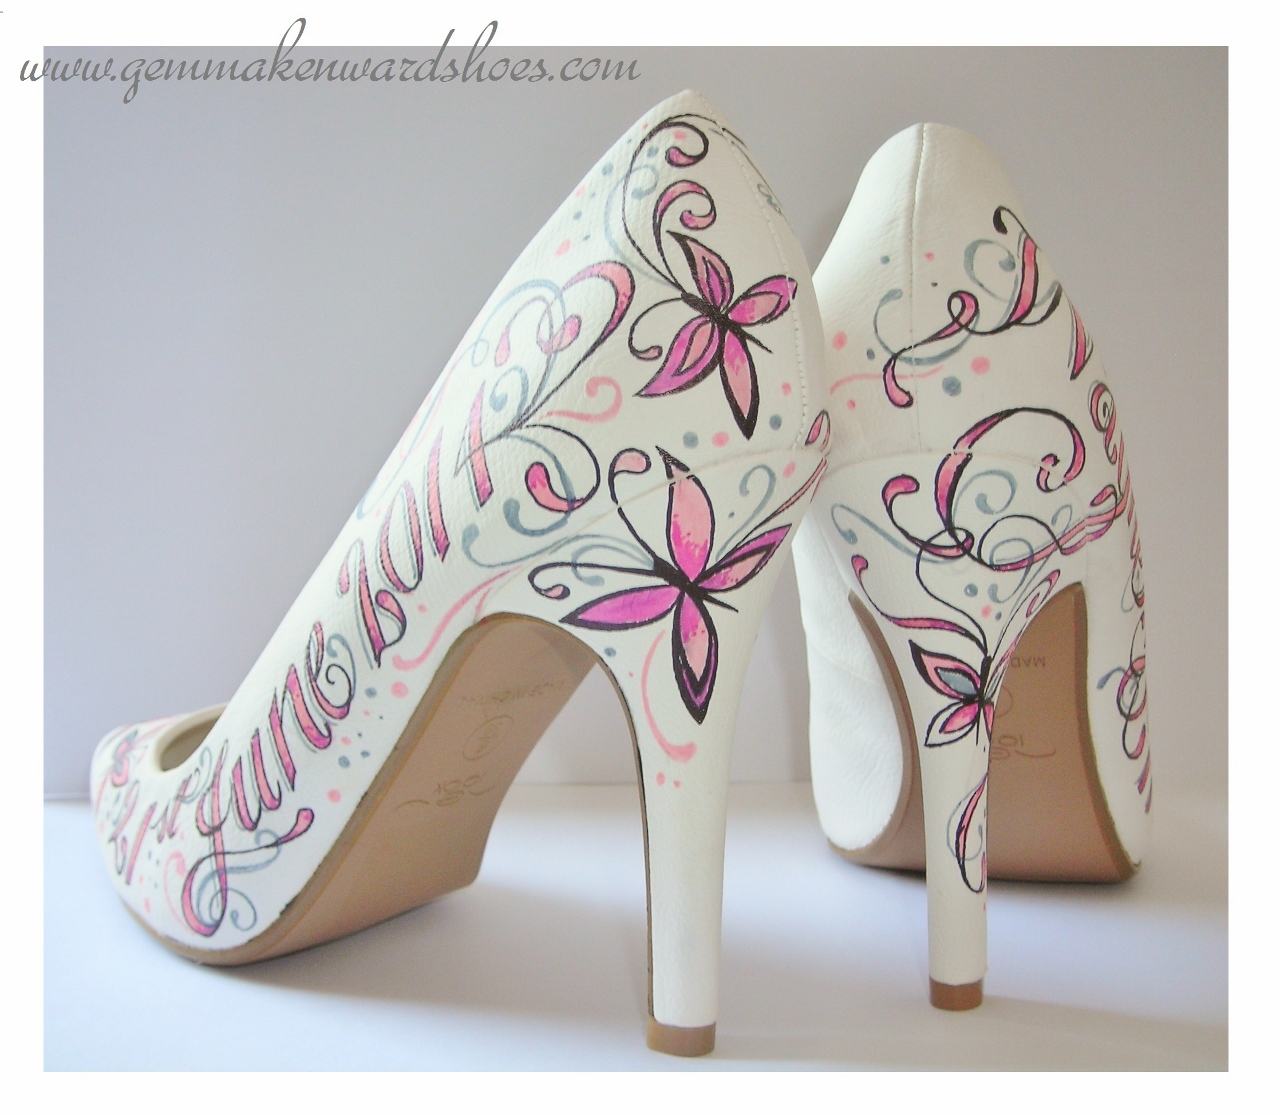 A touch of grey within the pink and white on hand painted shoes for a wedding in 2014.